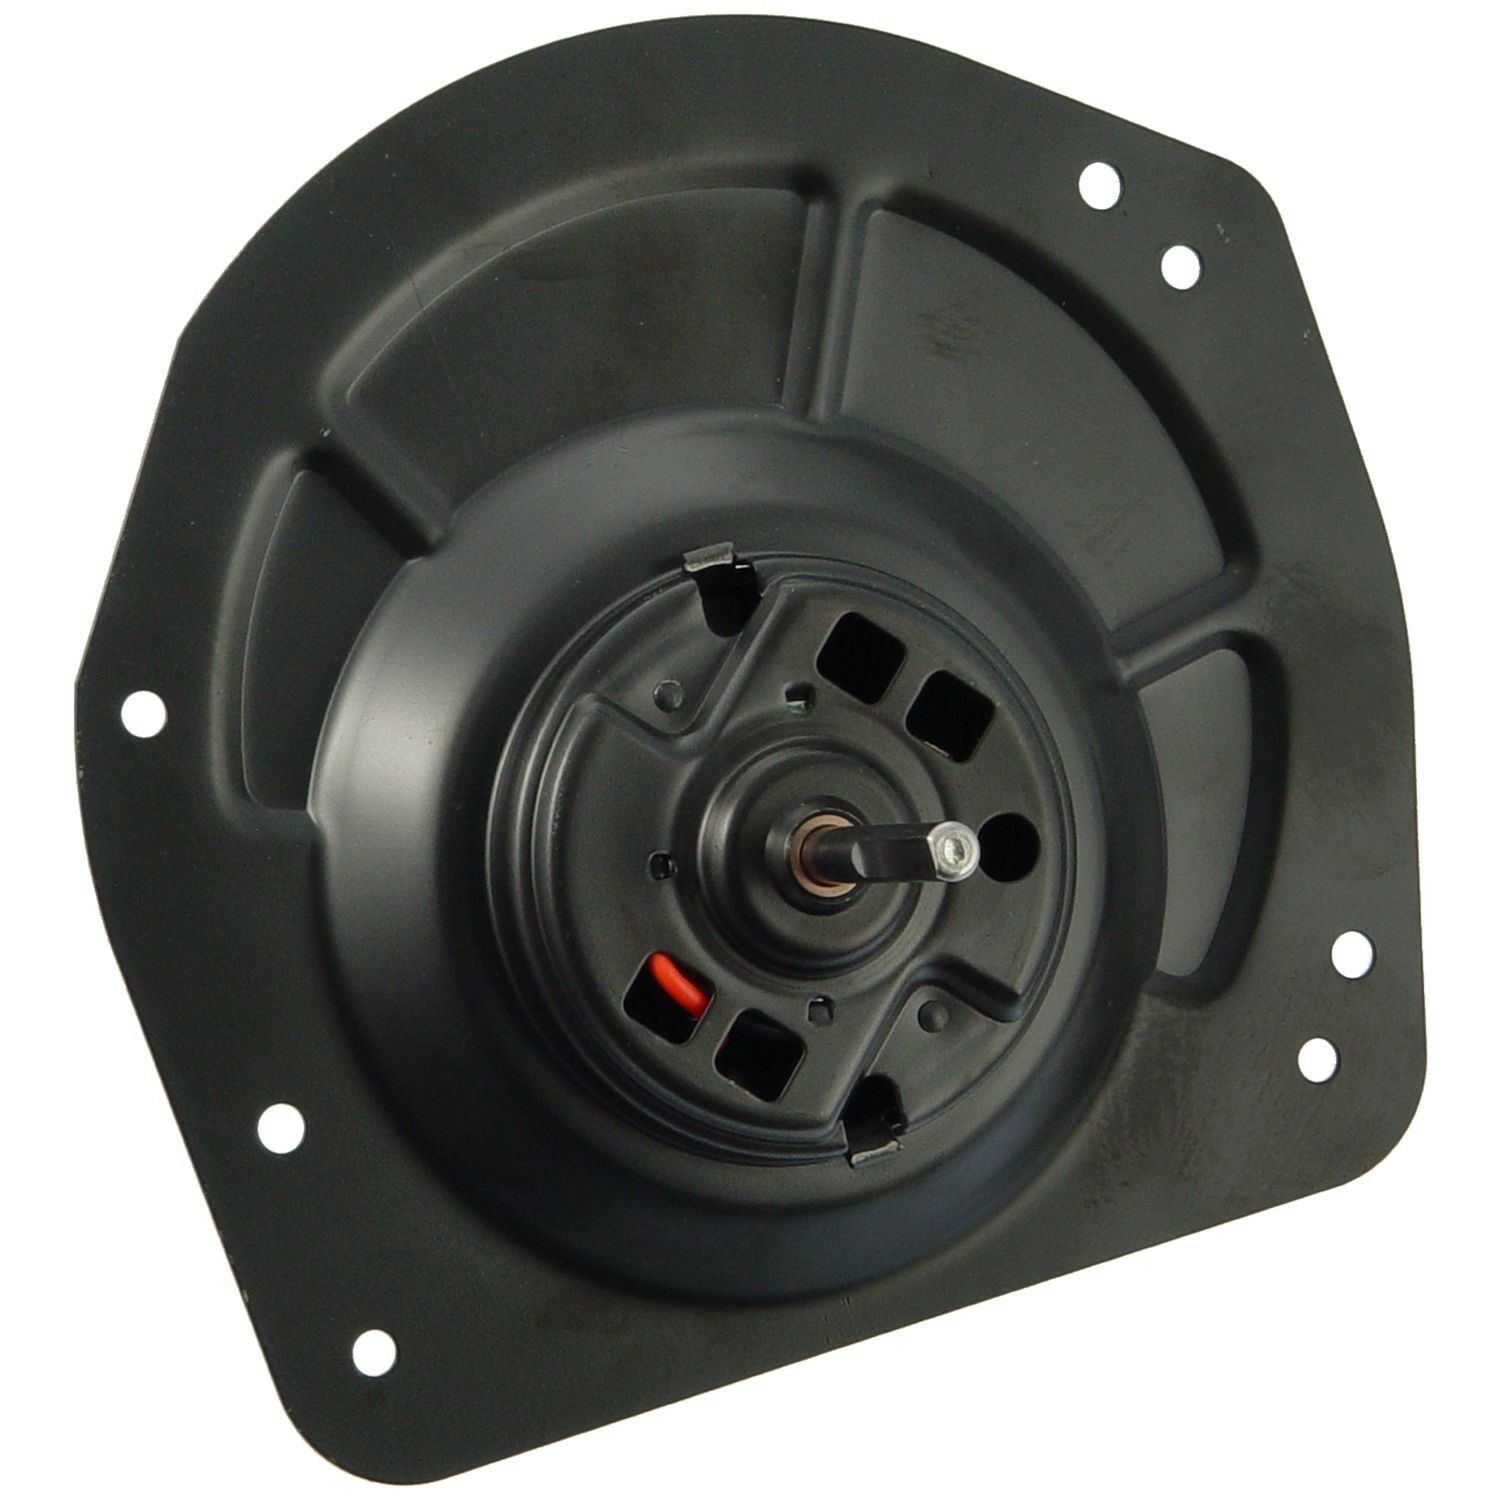 VDO PM287 Blower Motor Without Wheel Fits 1998-2004 Crown Victoria Grand Marquis